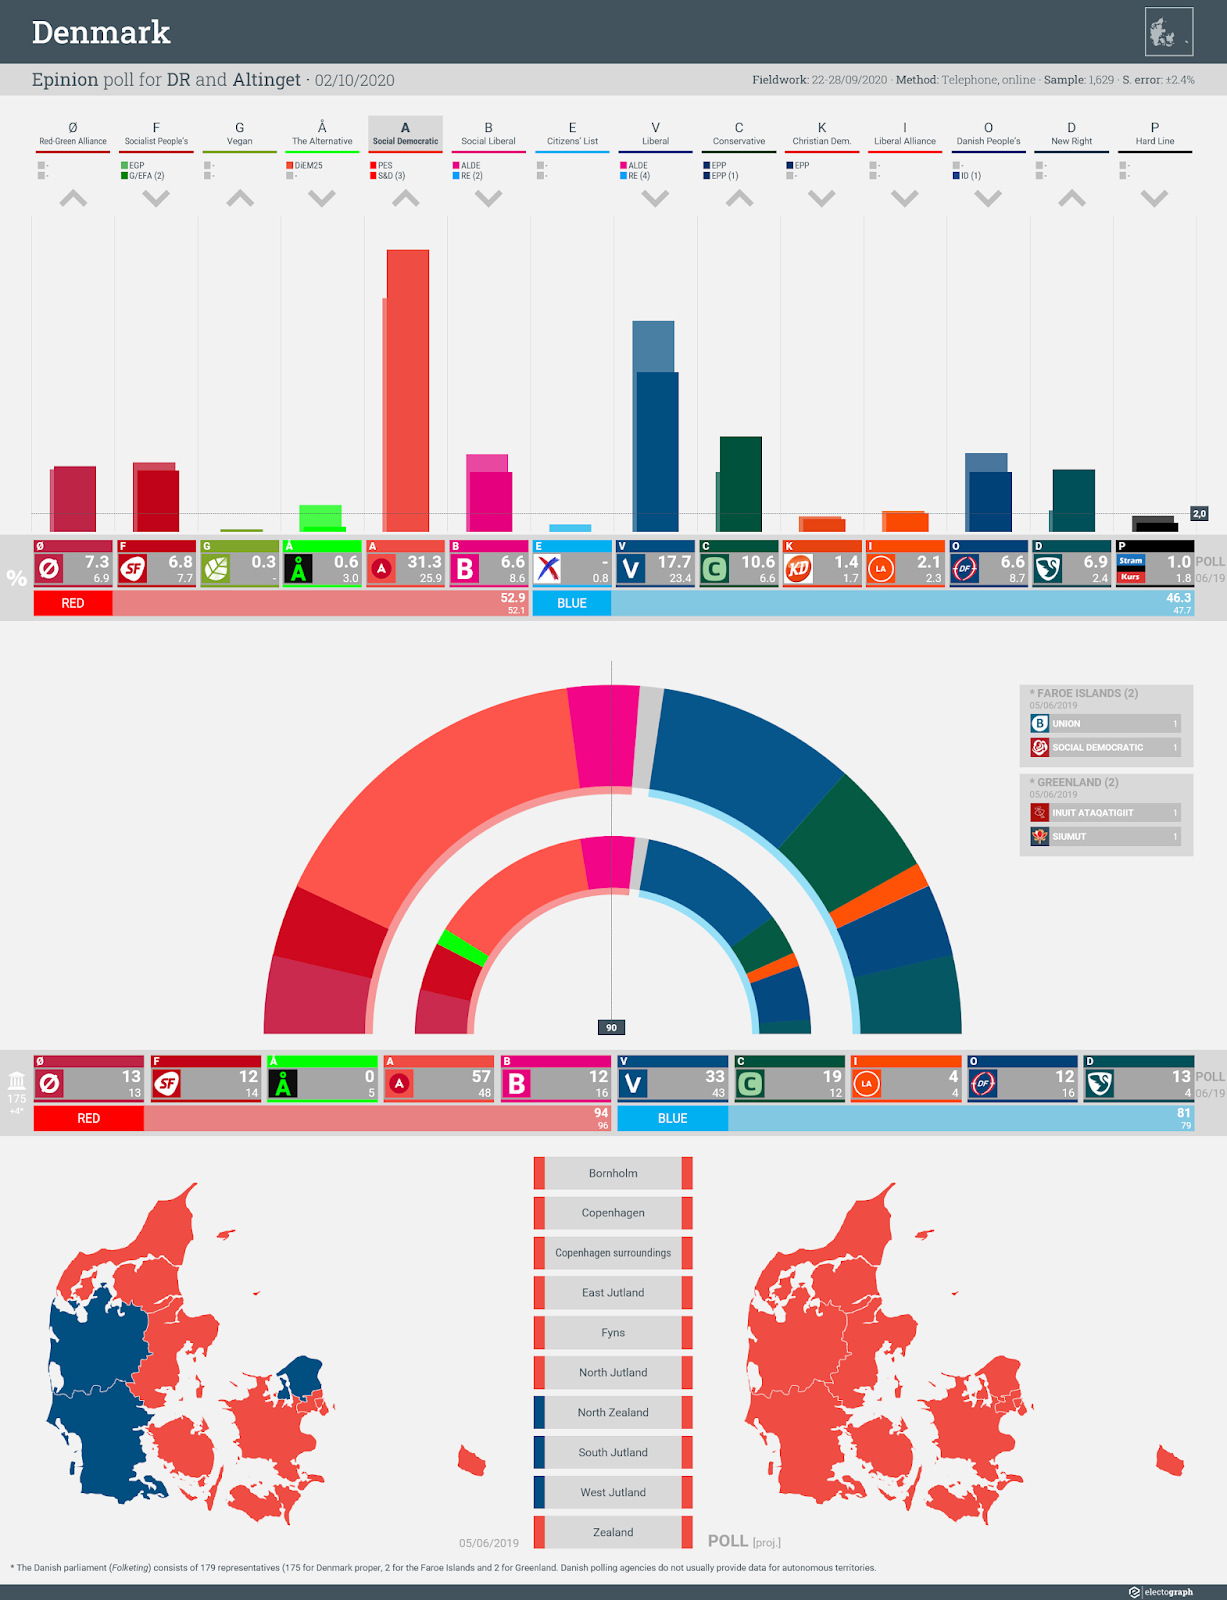 DENMARK: Epinion poll chart for DR and Altinget, 2 October 2020